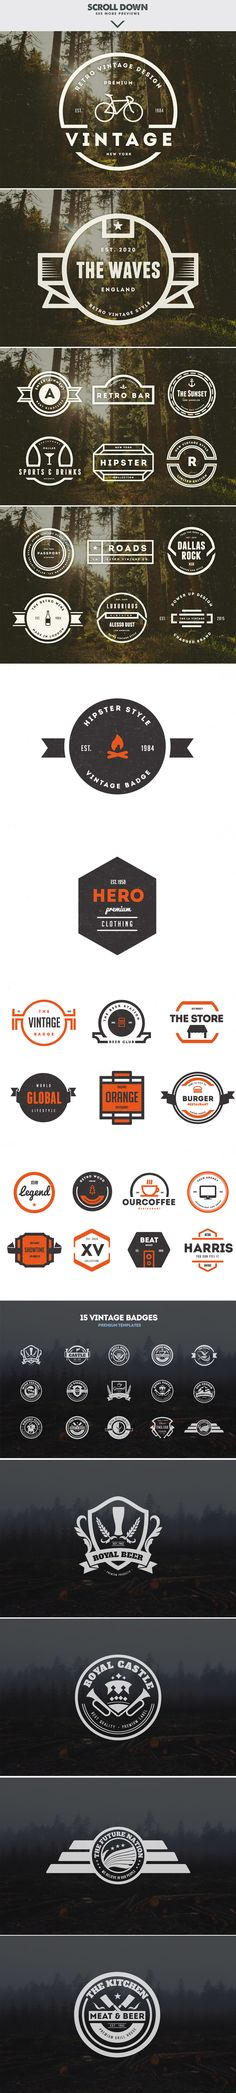 MASSIVE BUNDLE 576 Vintage Logos by DesignDistrict on @creativemarket